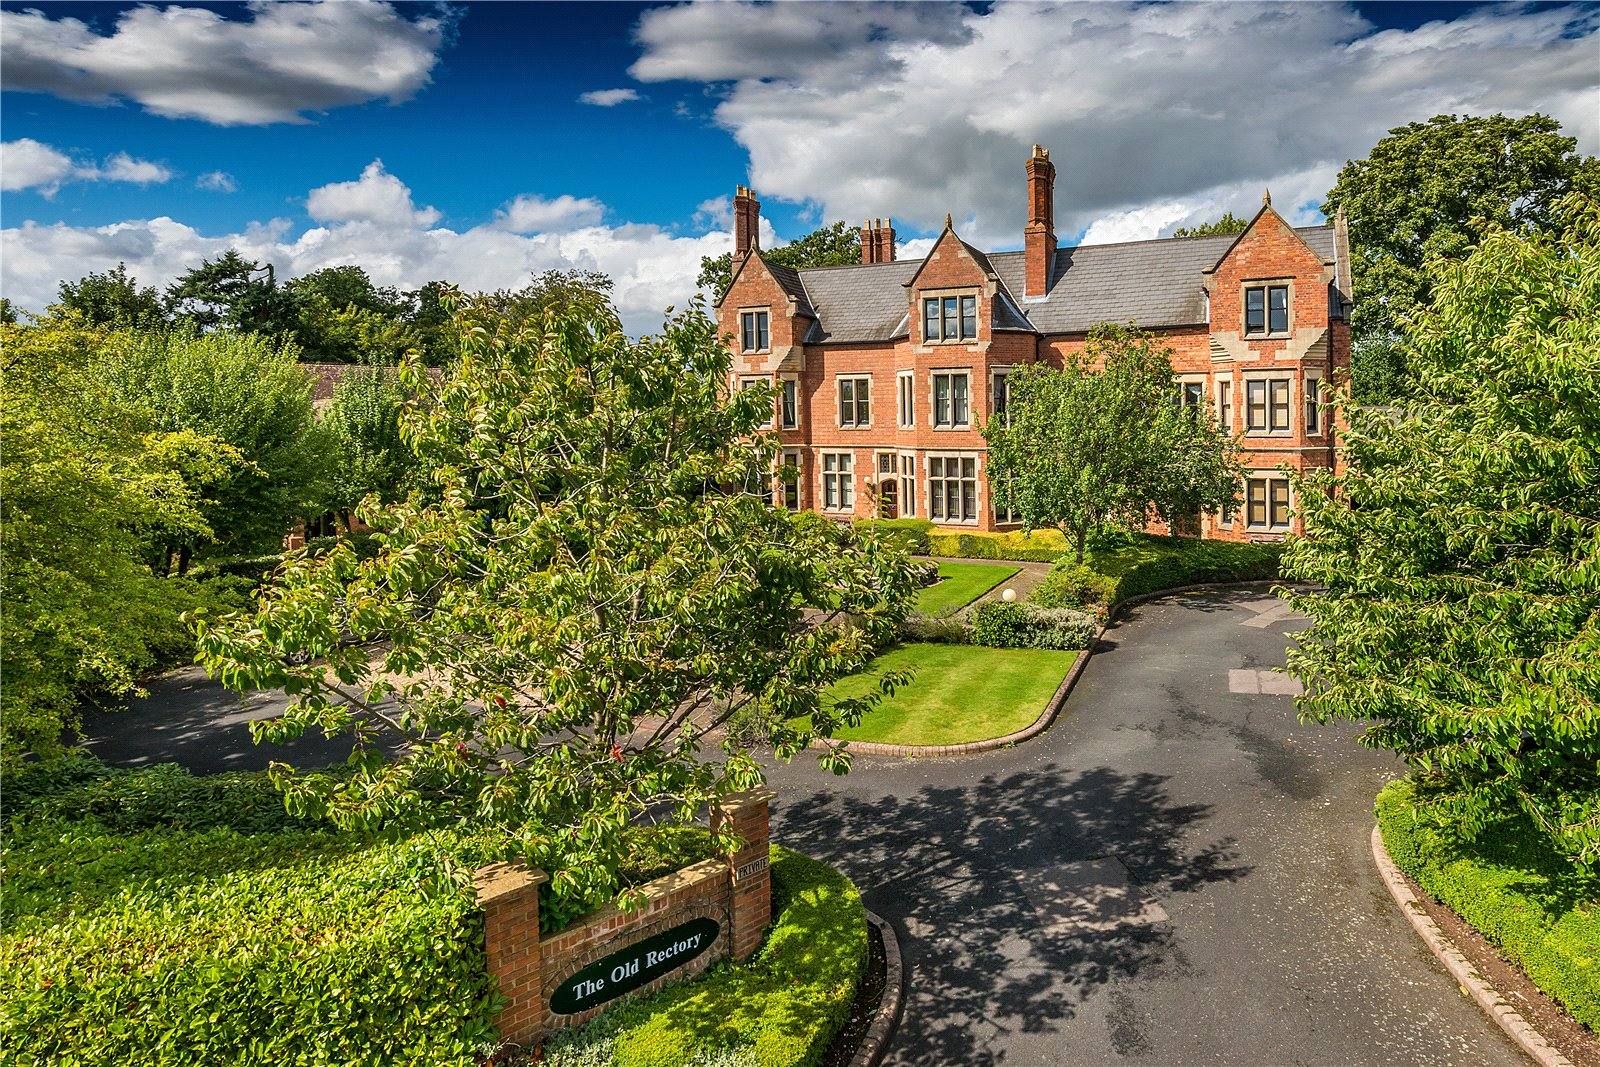 7 The Old Rectory, Rectory Drive, Weston-under-Lizard, Shifnal, TF11